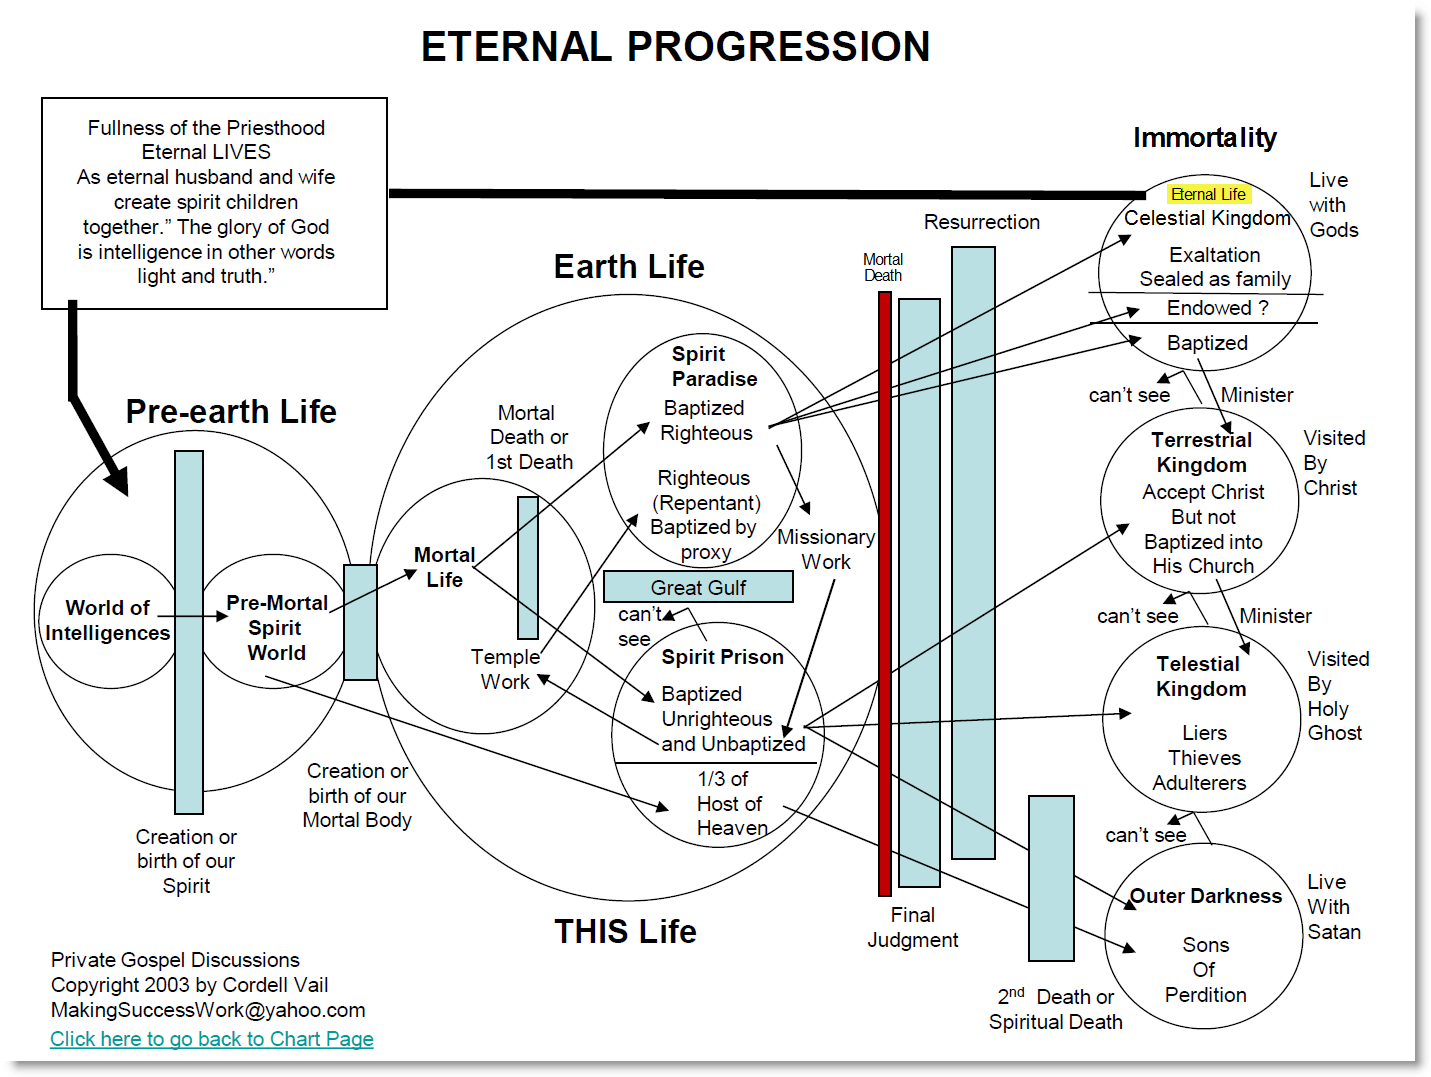 Apparently apostates do go to outer darkness by this plan of lds salvationg pooptronica